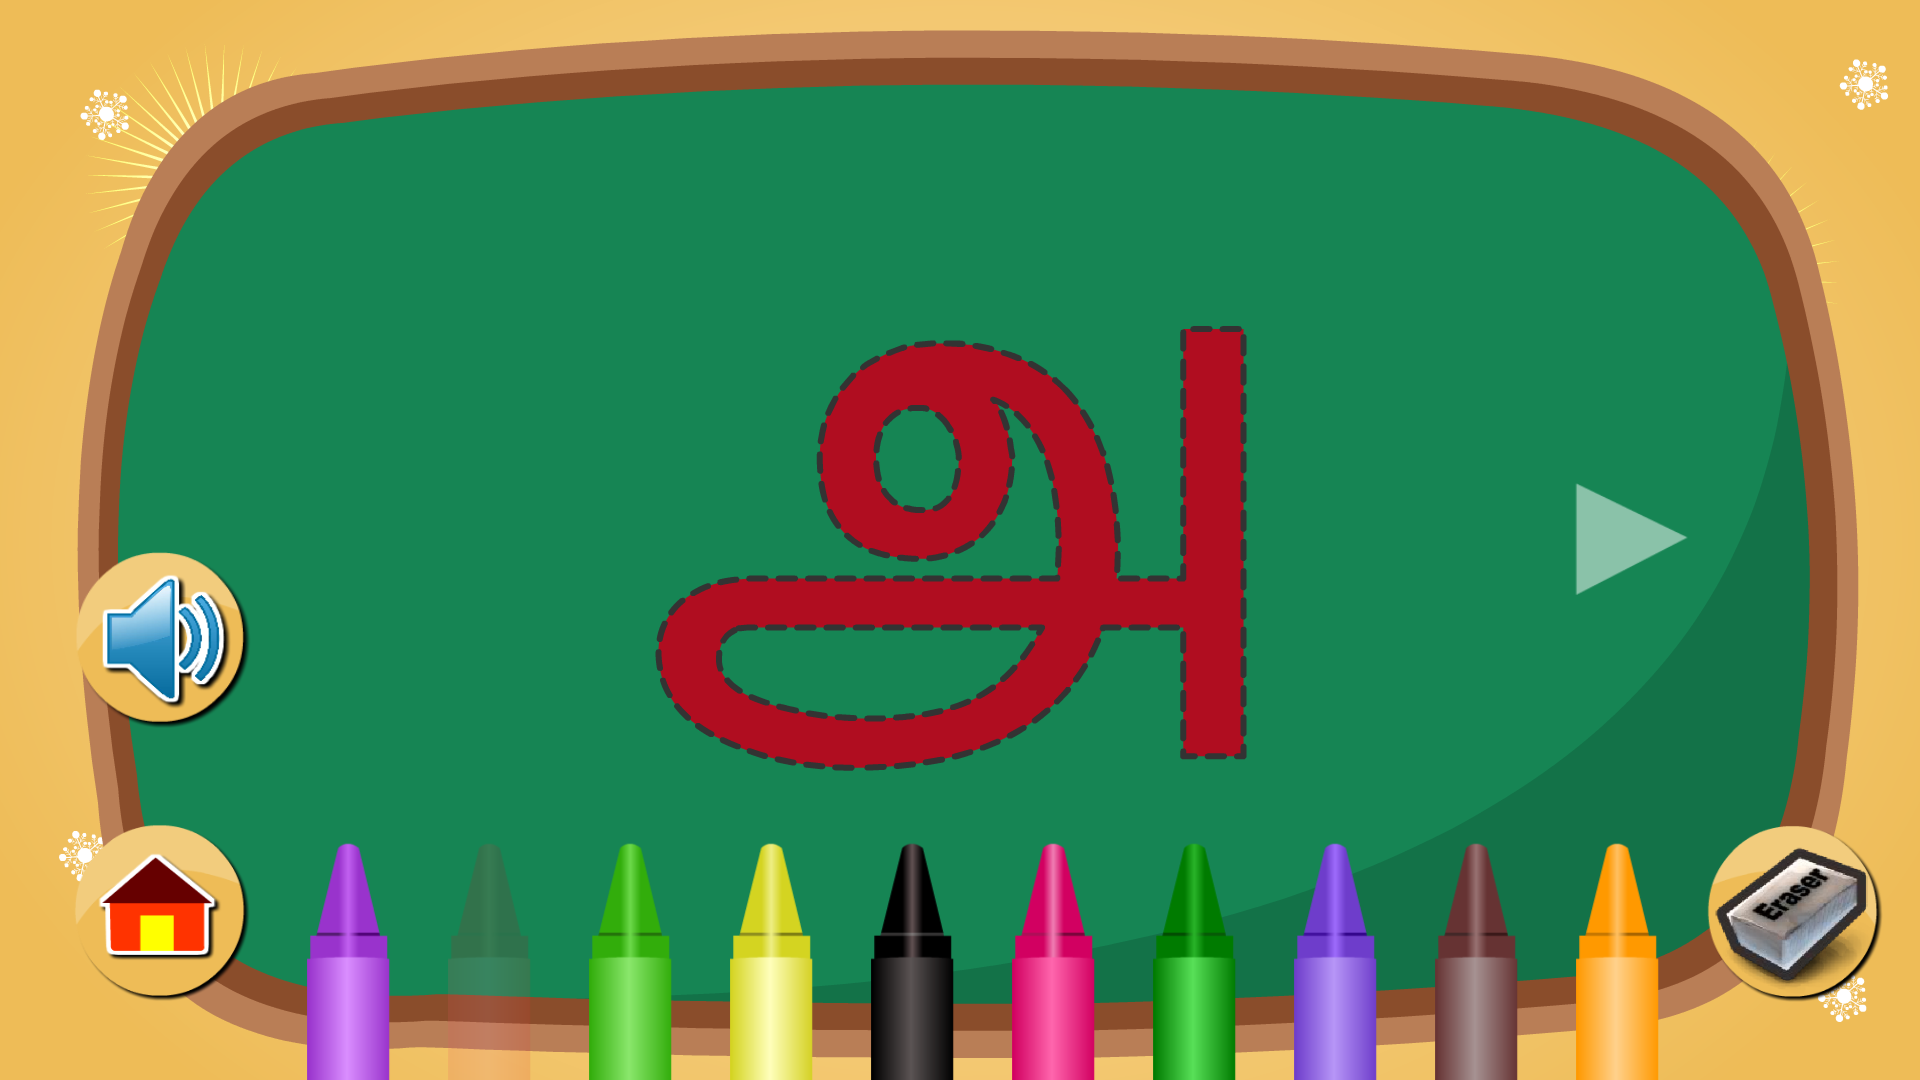 Tamil Alphabet Tracing App Ranking and Store Data | App Annie